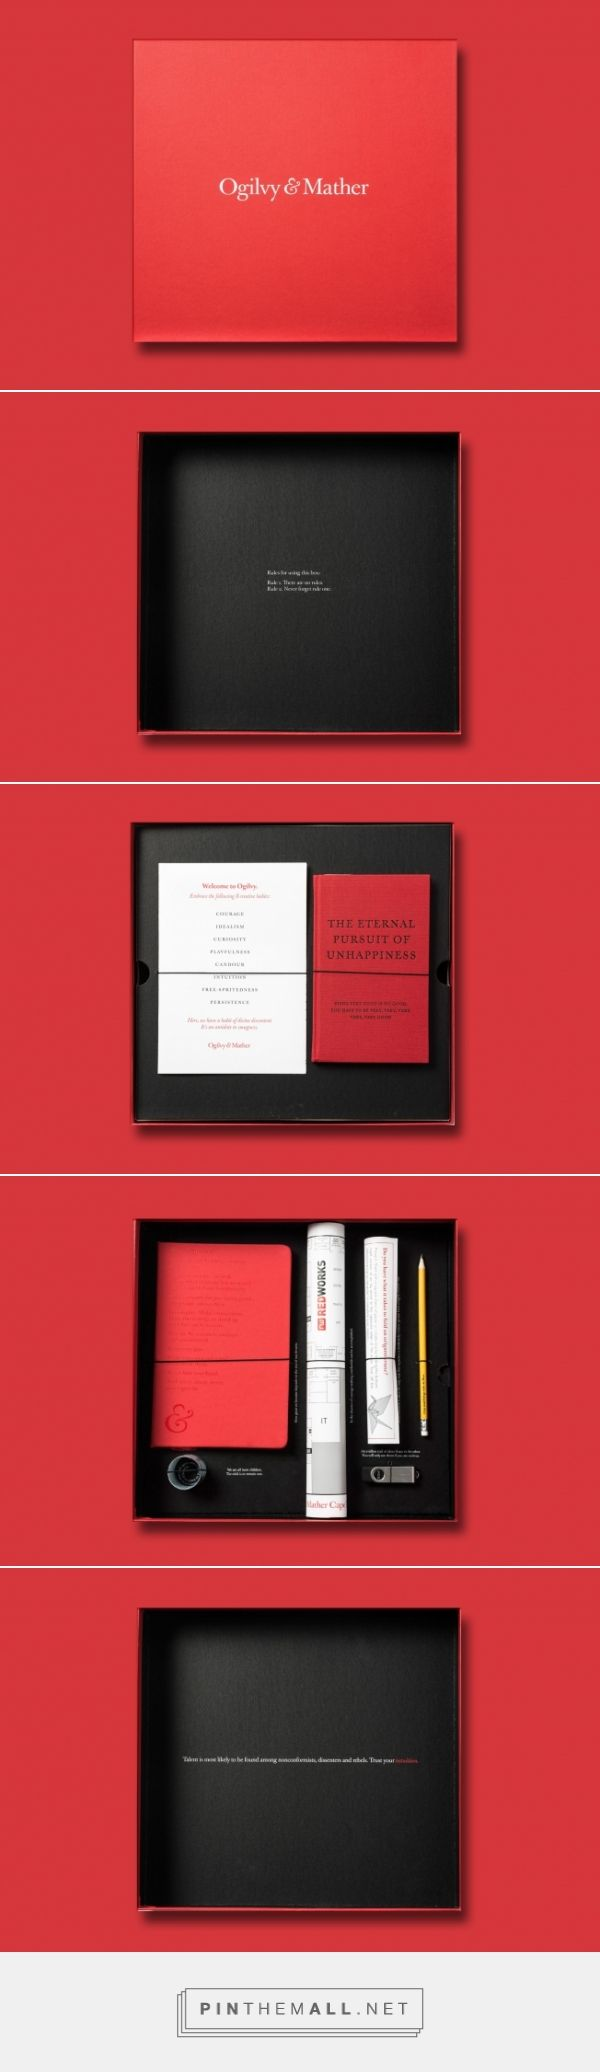 Check Out the Amazing Welcome Kit This Ogilvy Office Gives Each New Hire | Adweek... - a grouped images picture - Pin Them All